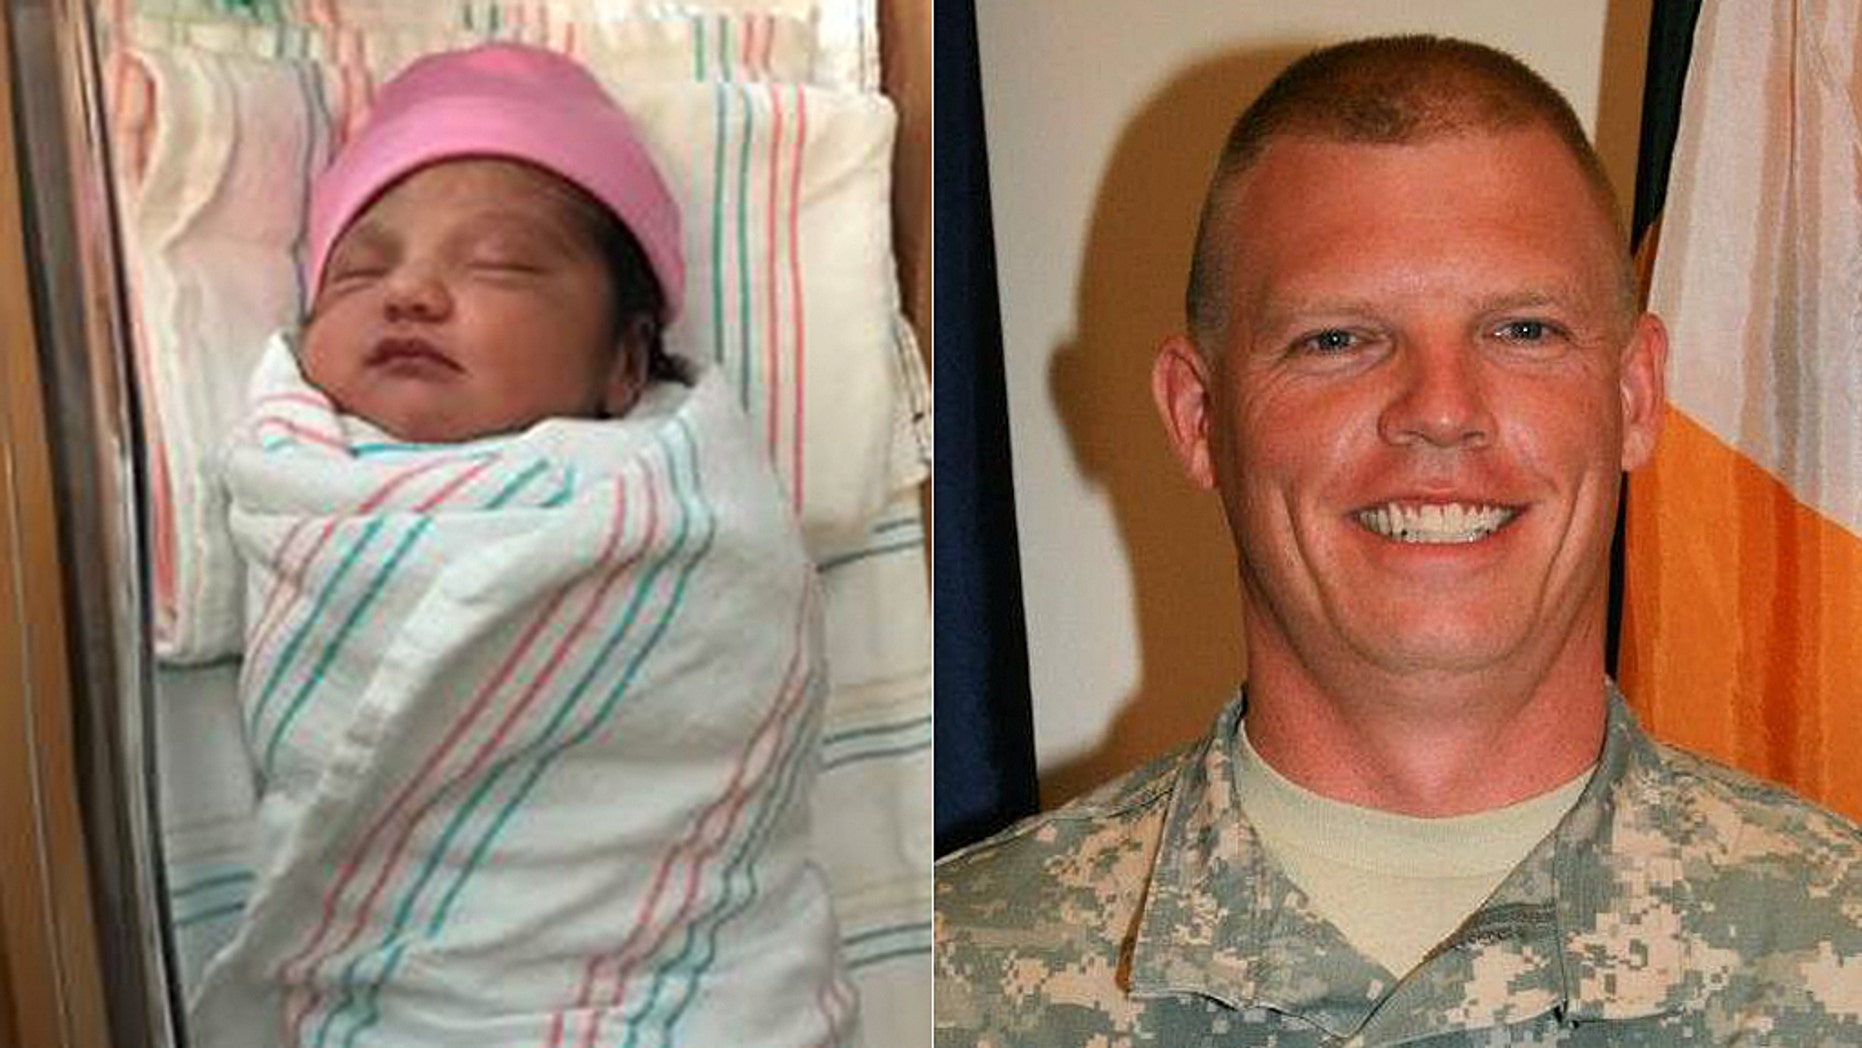 Baby Camila (left) was born in a credit union parking lot and Officer Jason Carty (right) was on hand to help deliver her in an emergency